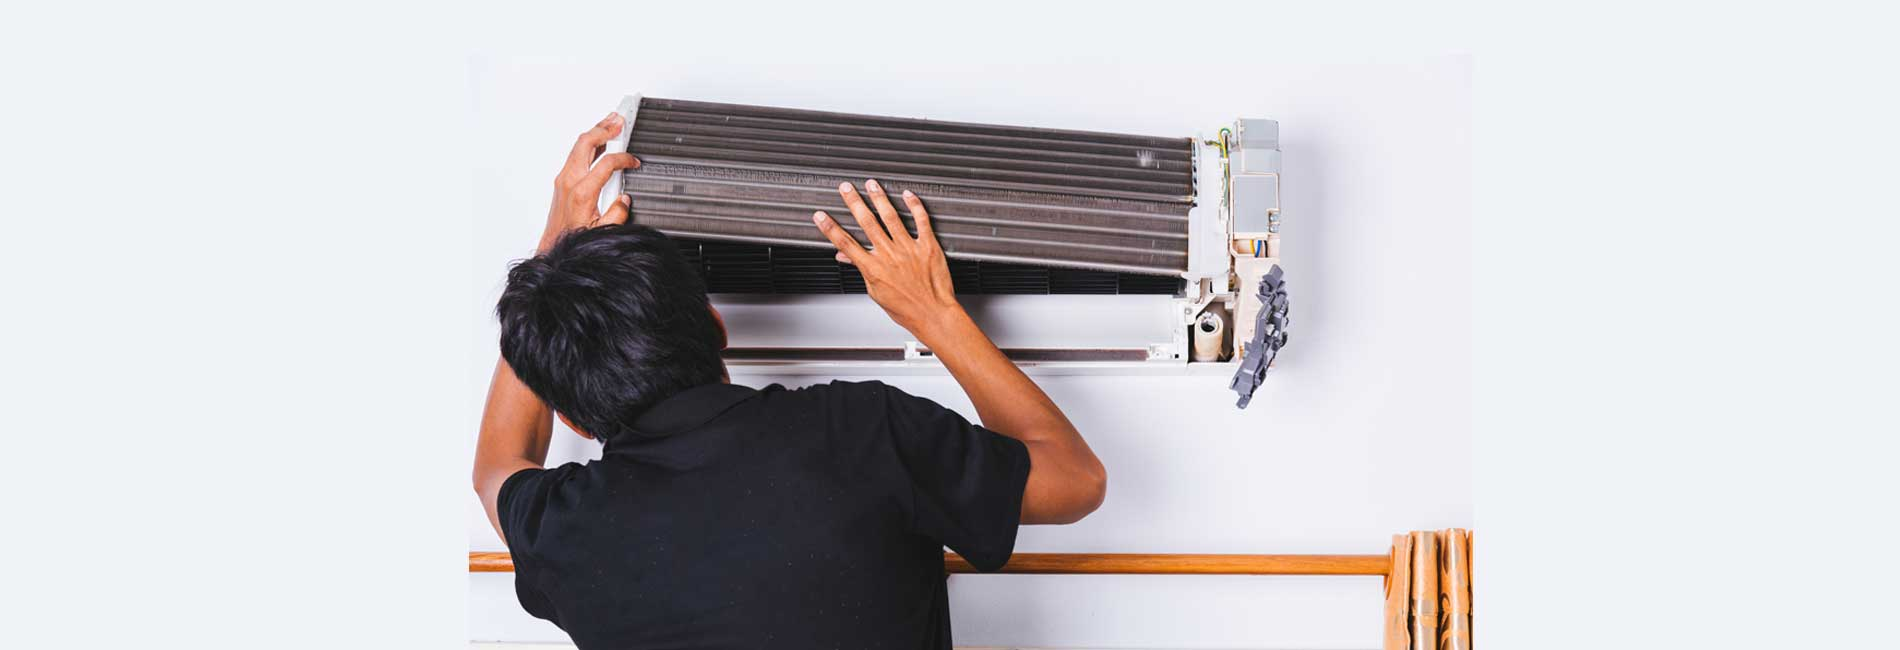 Whirlpool Split AC Uninstallation in Pattalam